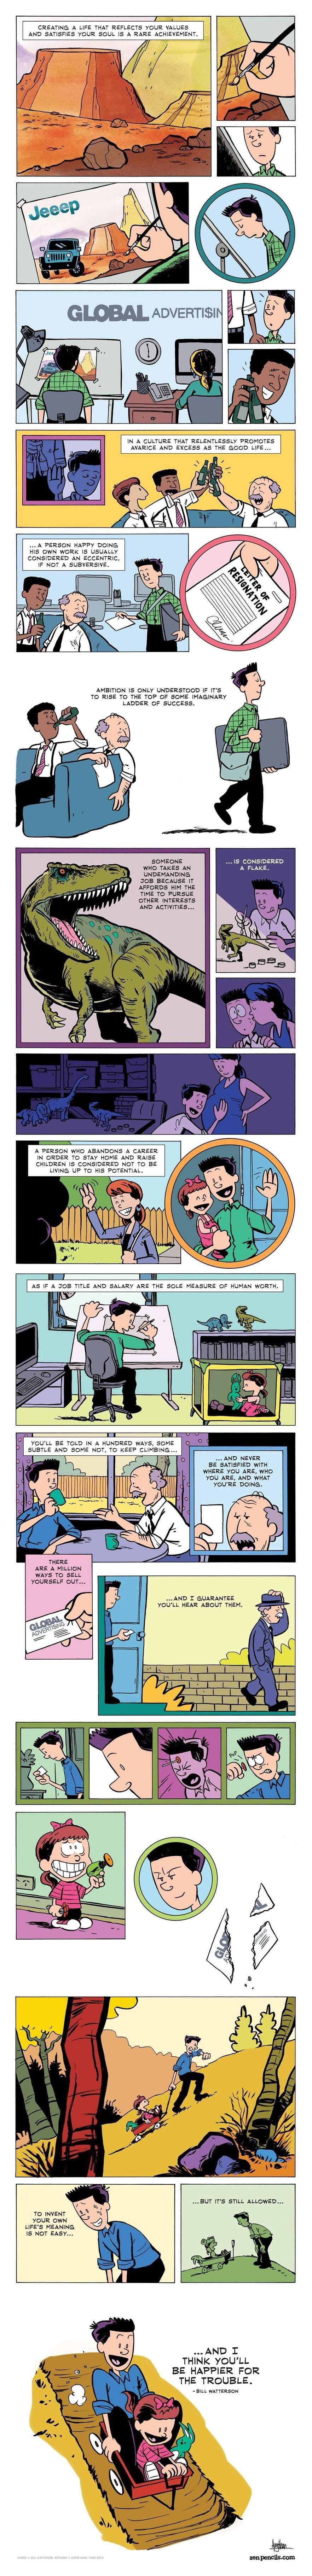 Bill-Watterson-quote.jpg